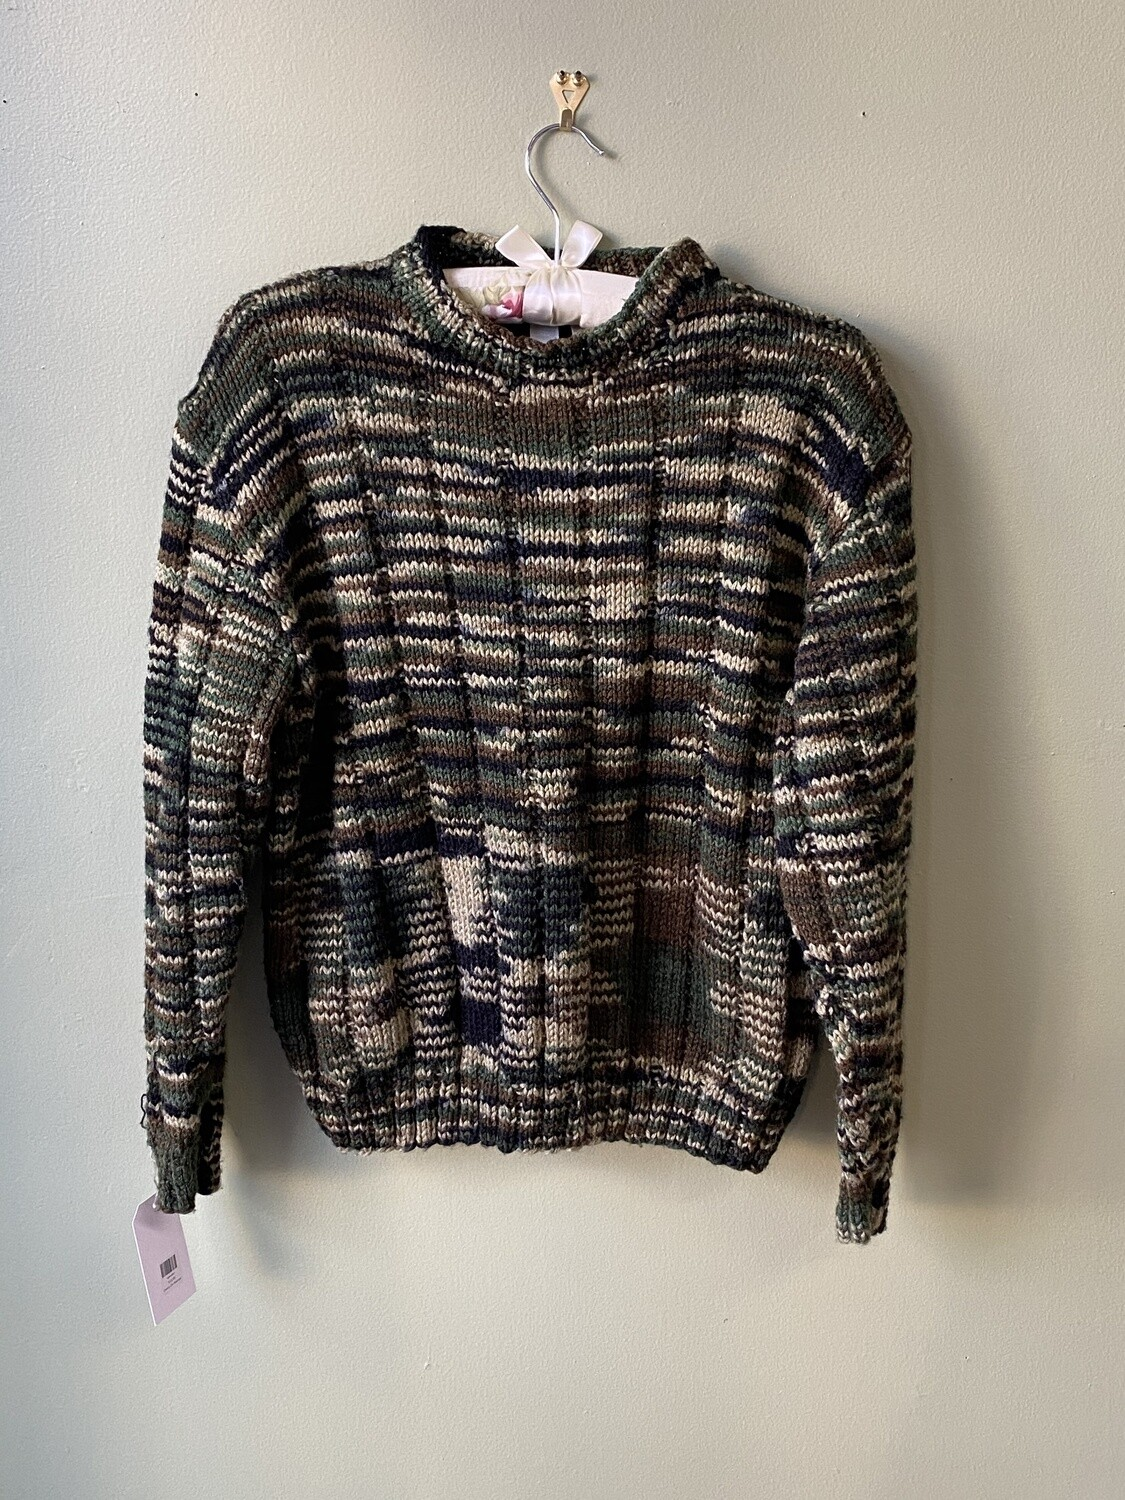 Black and Tan Sweater with Drop-shoulders